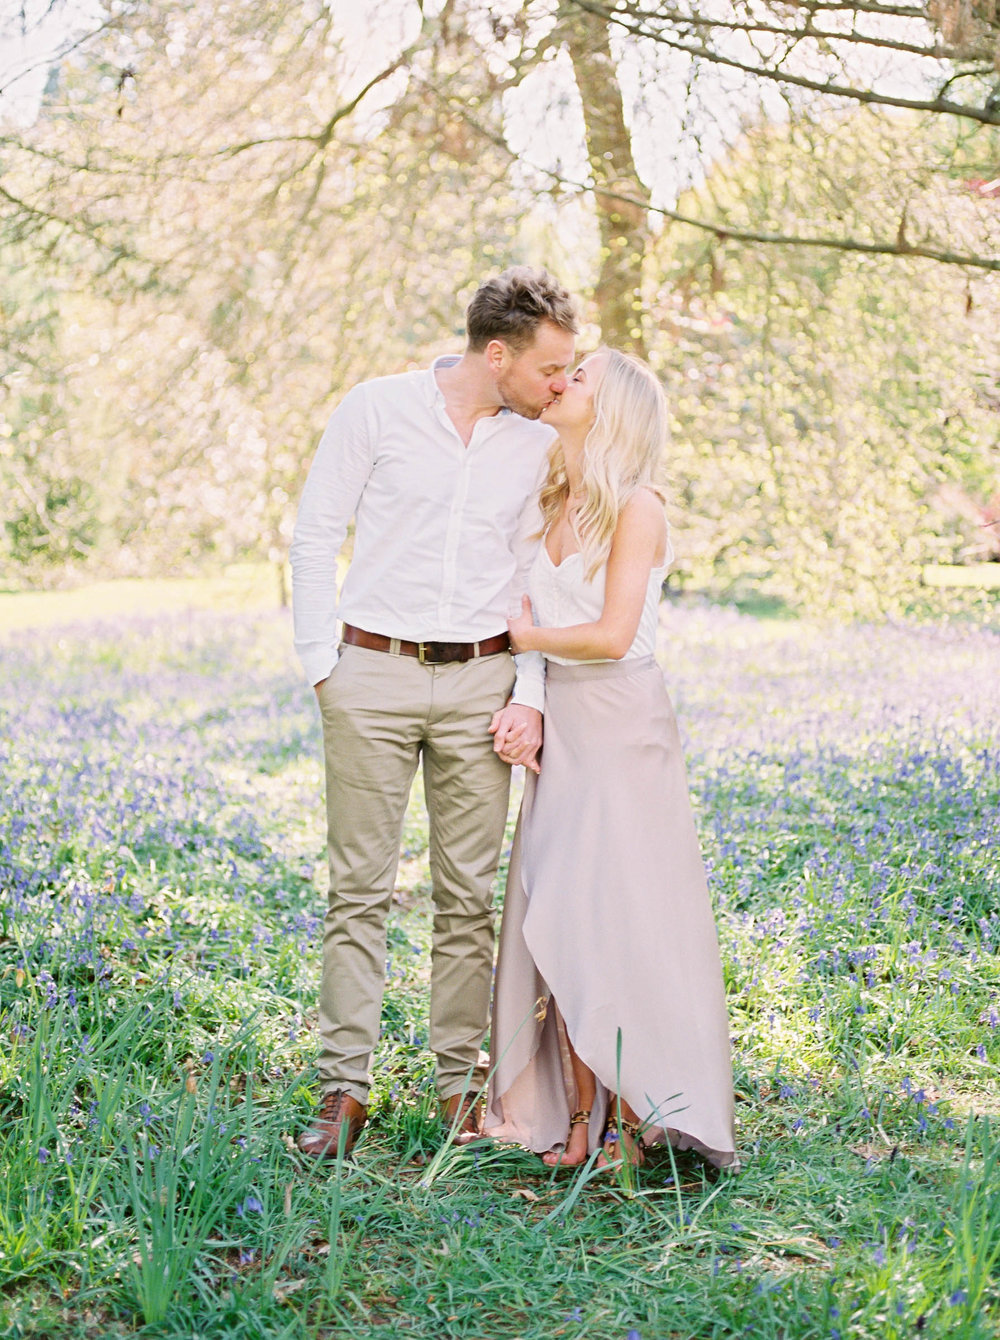 Amy O'Boyle Photography- Destination & UK Fine Art Film Wedding Photographer- Sheffield Park Garden National Trust Spring Engagement Shoot-11.jpg